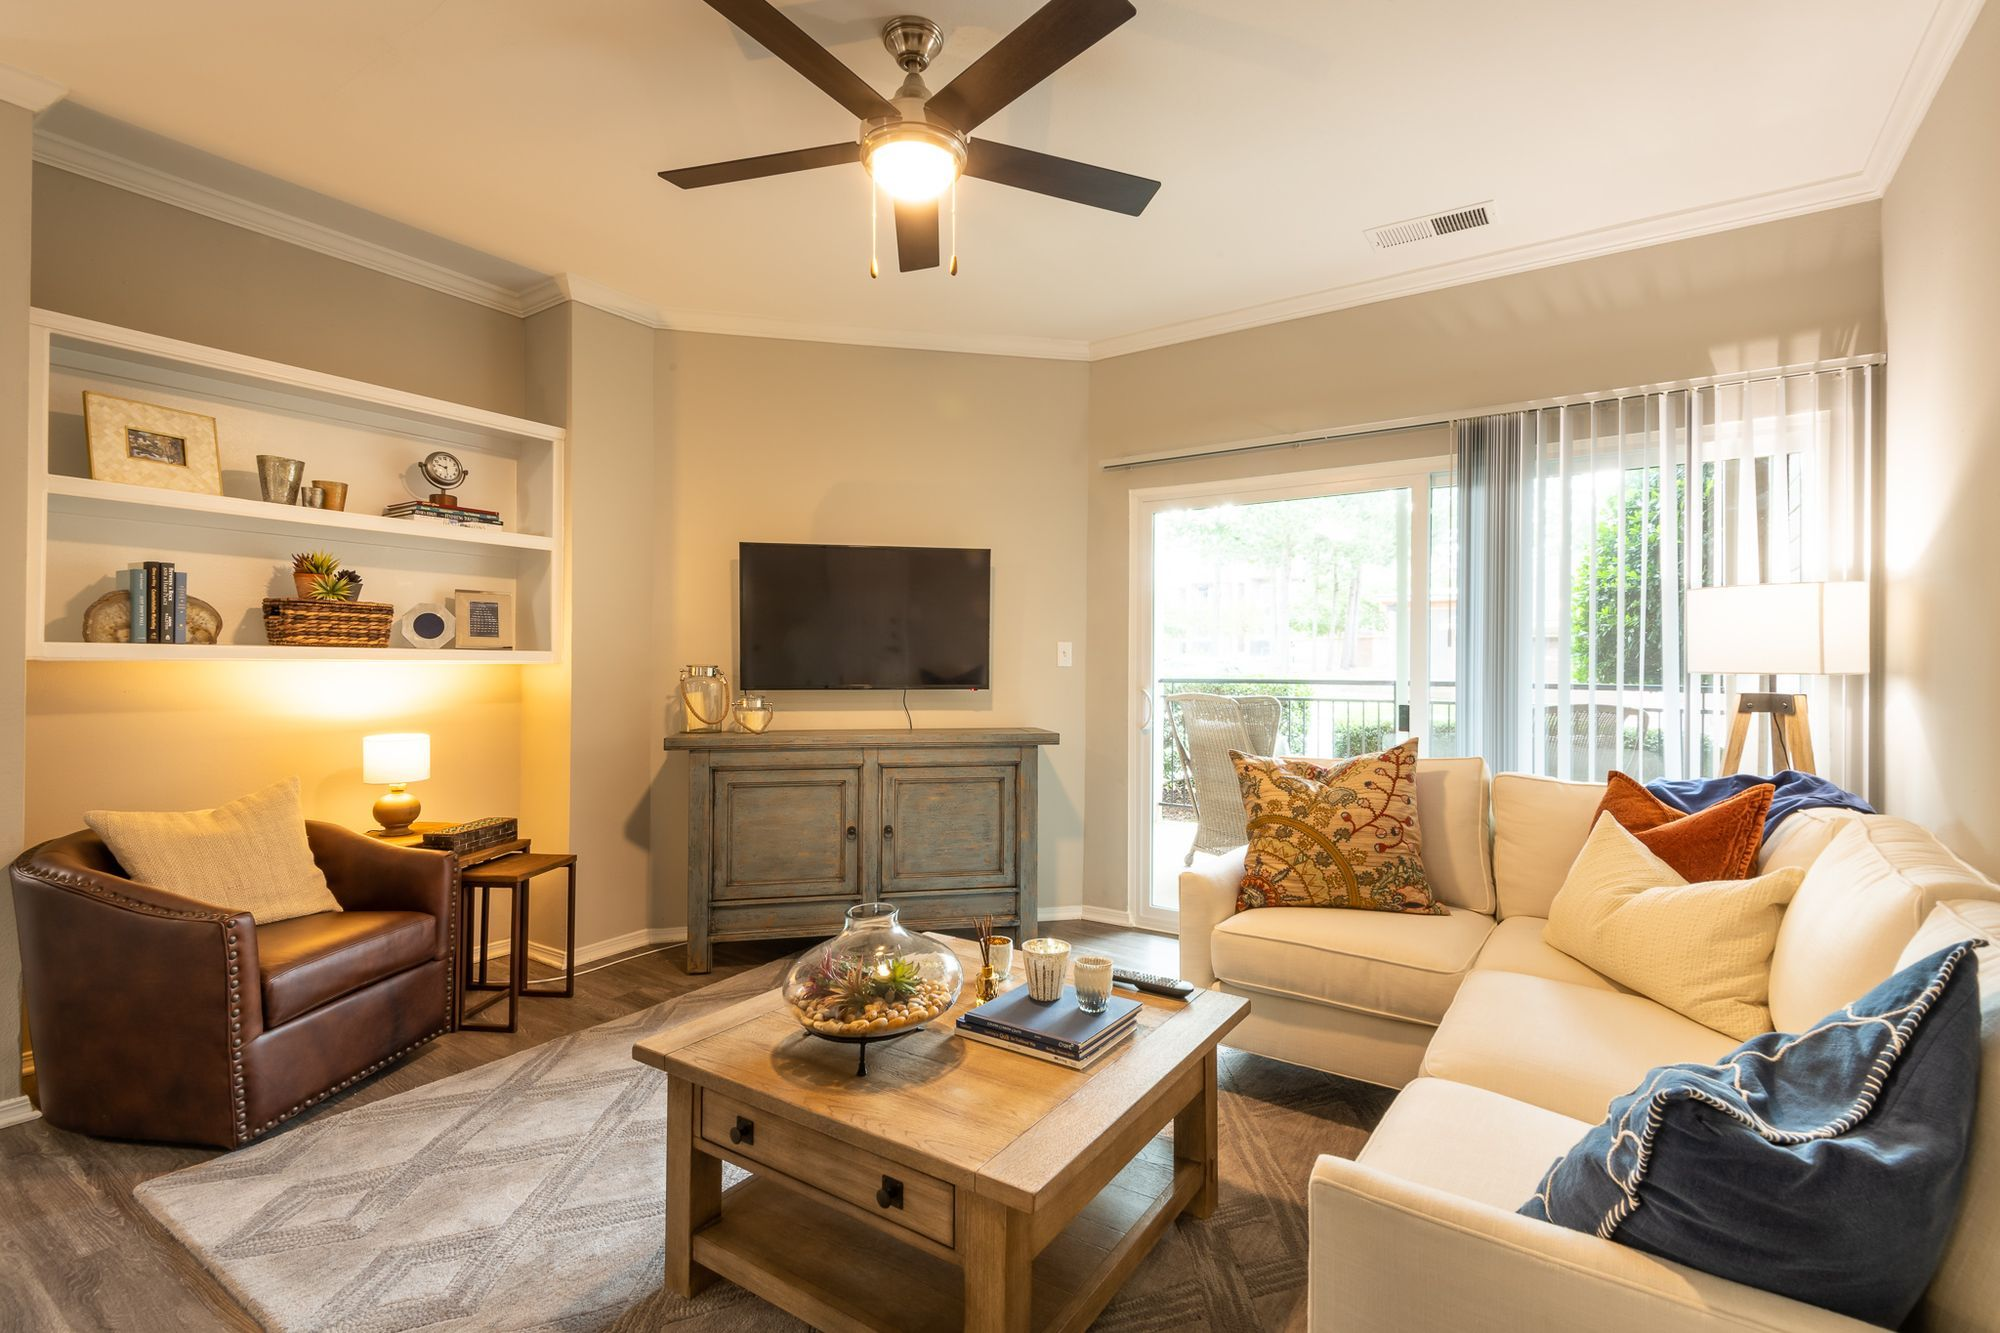 20 Best Apartments For Rent In Cary Nc With Pictures